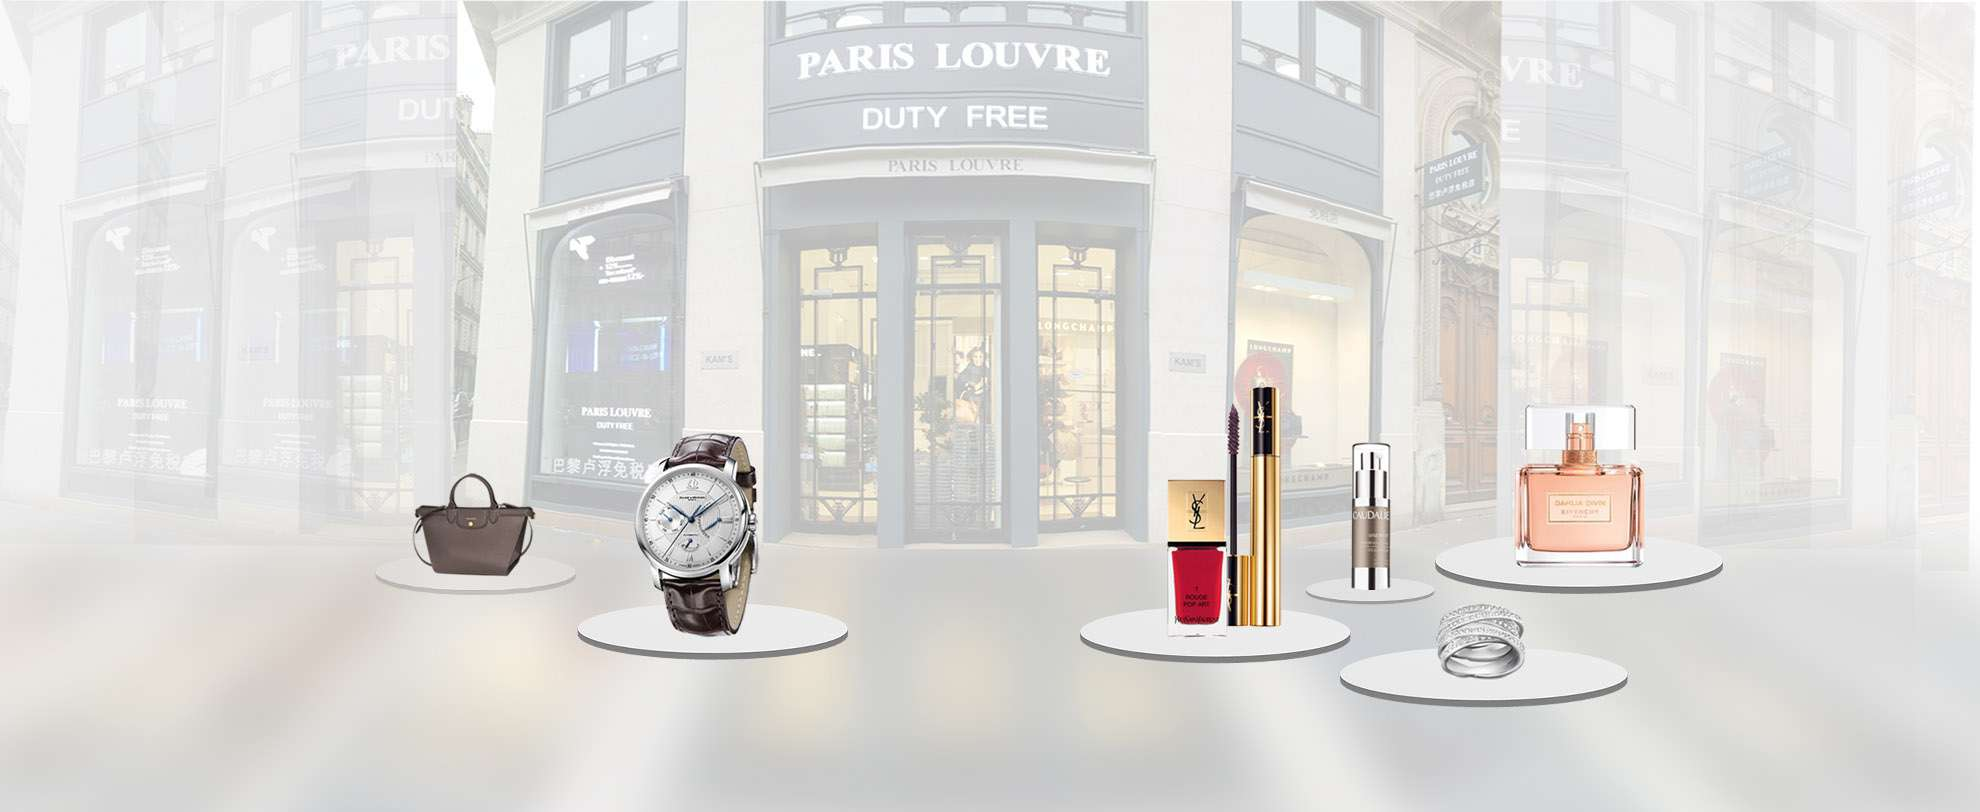 Paris Louvre Duty Free